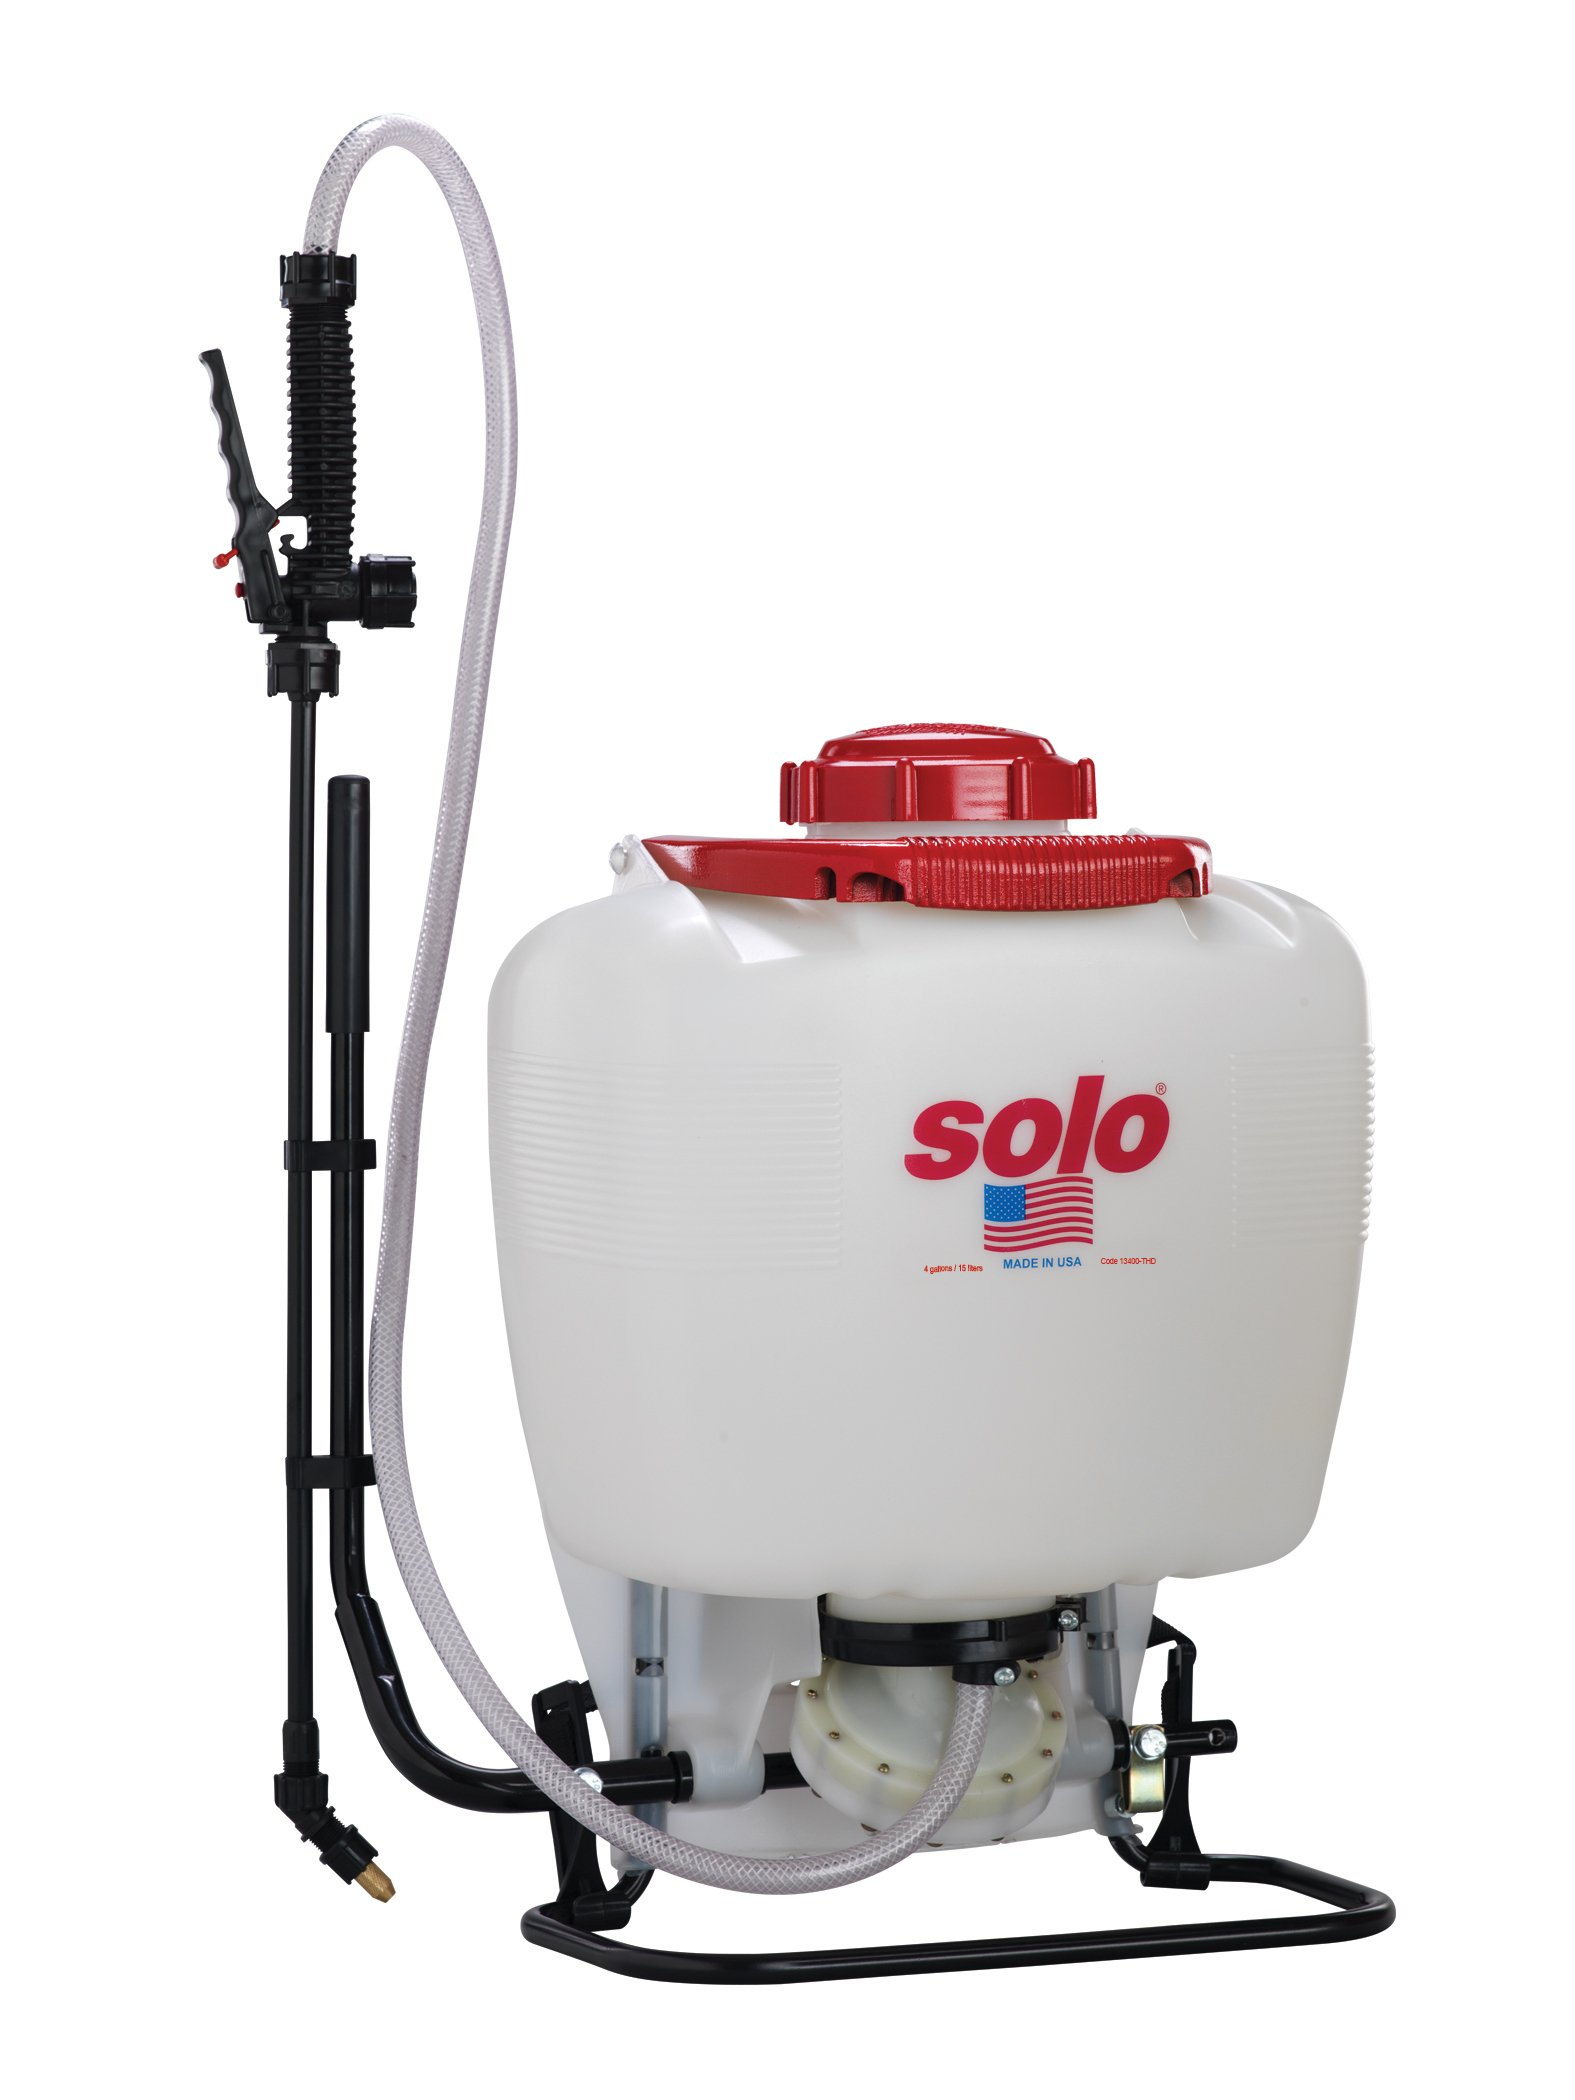 Solo 475-B-DELUXE Professional Backpack Sprayer, 4-Gallon by Solo, Inc.